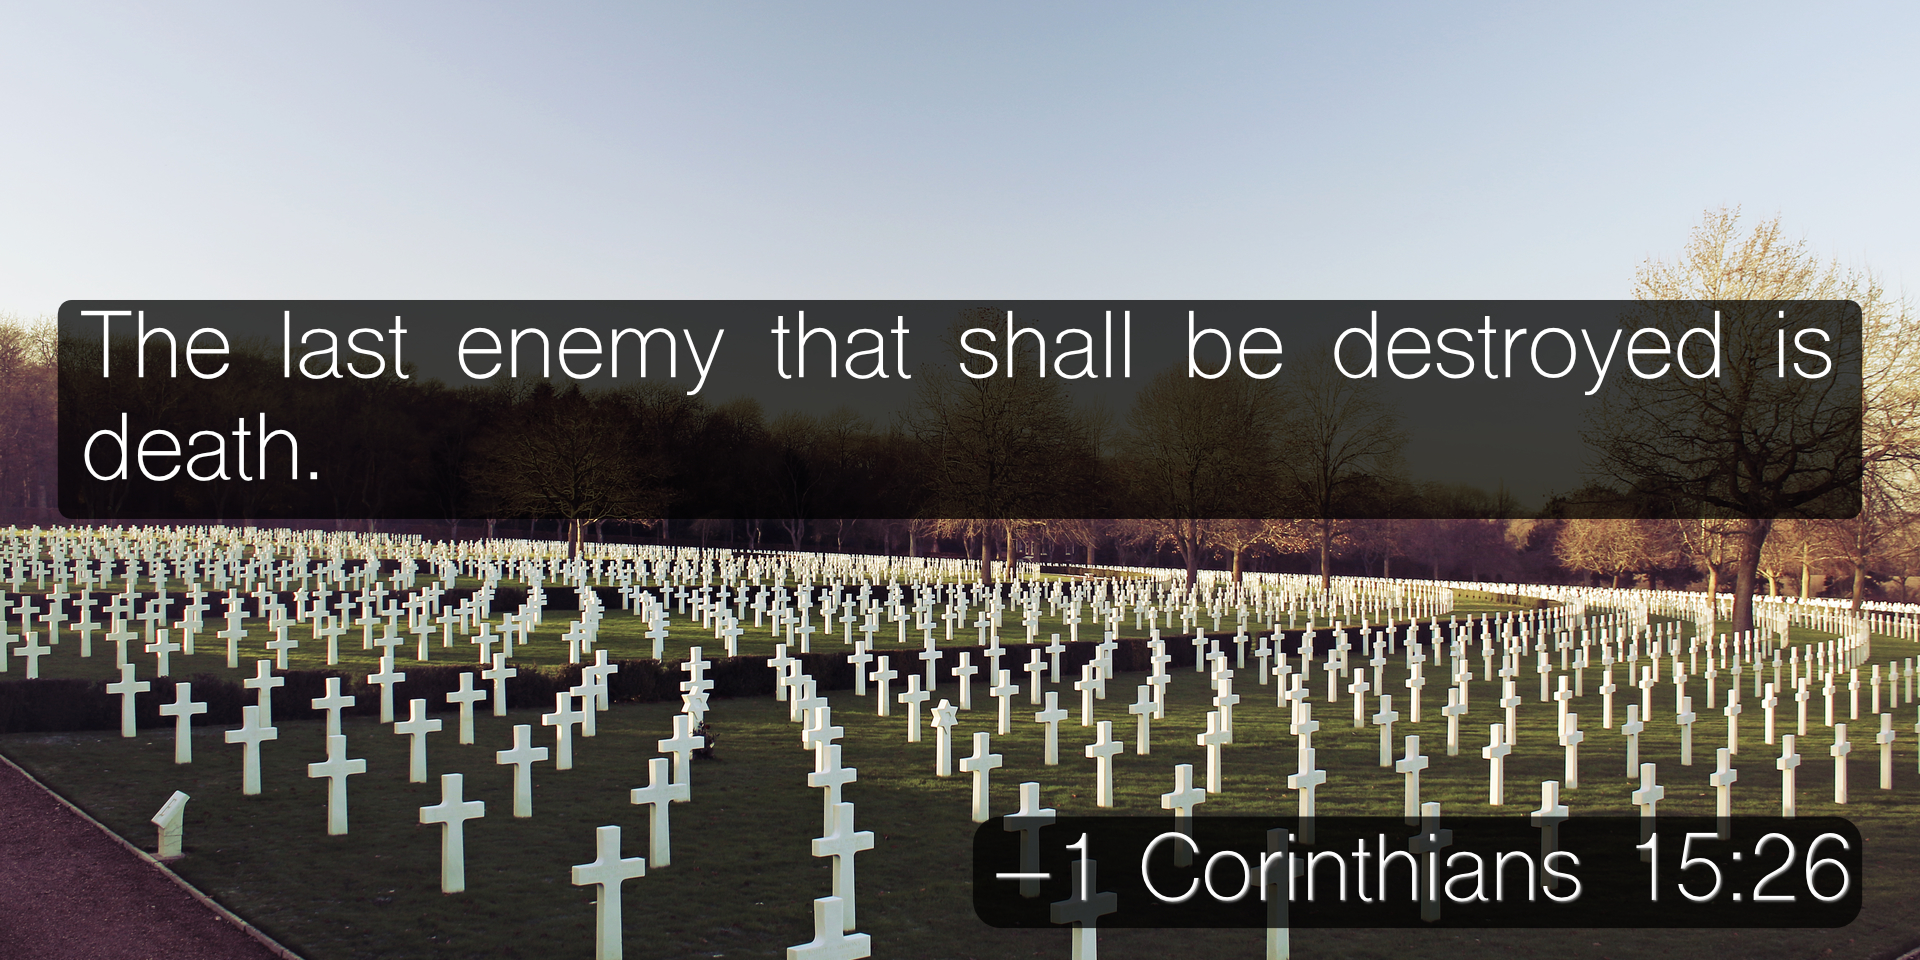 The last enemy that shall be destroyed is death. –1 Corinthians 15:26